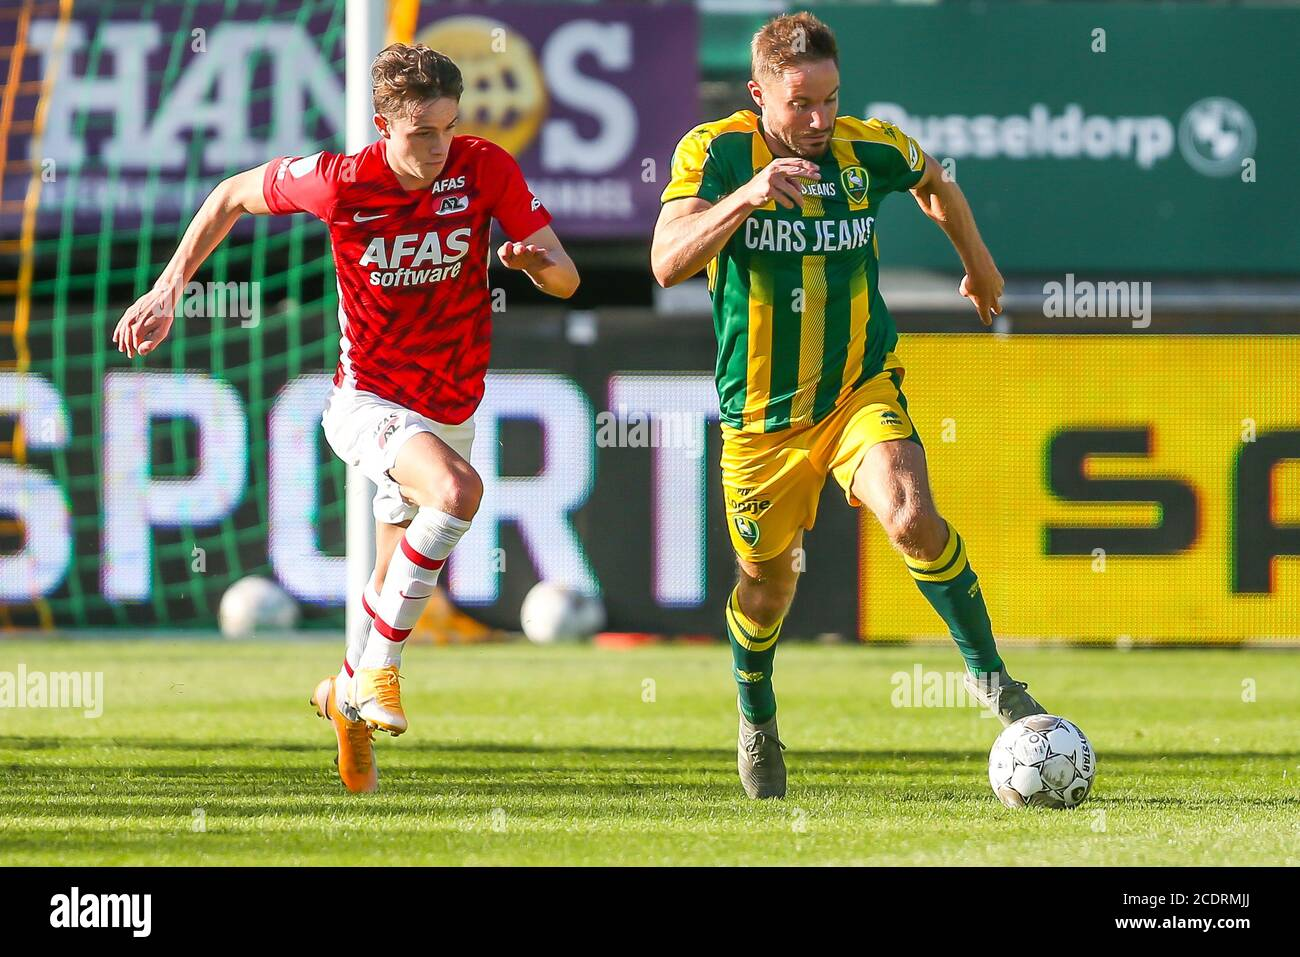 Rotterdam 29 8 20 Cars Jeans Stadion Pre Season 20 21 Ado Den Haag Az Az Player Fedde De Jong Ado Player Aaron Meijers Credit Pro Shots Alamy Live News Stock Photo Alamy